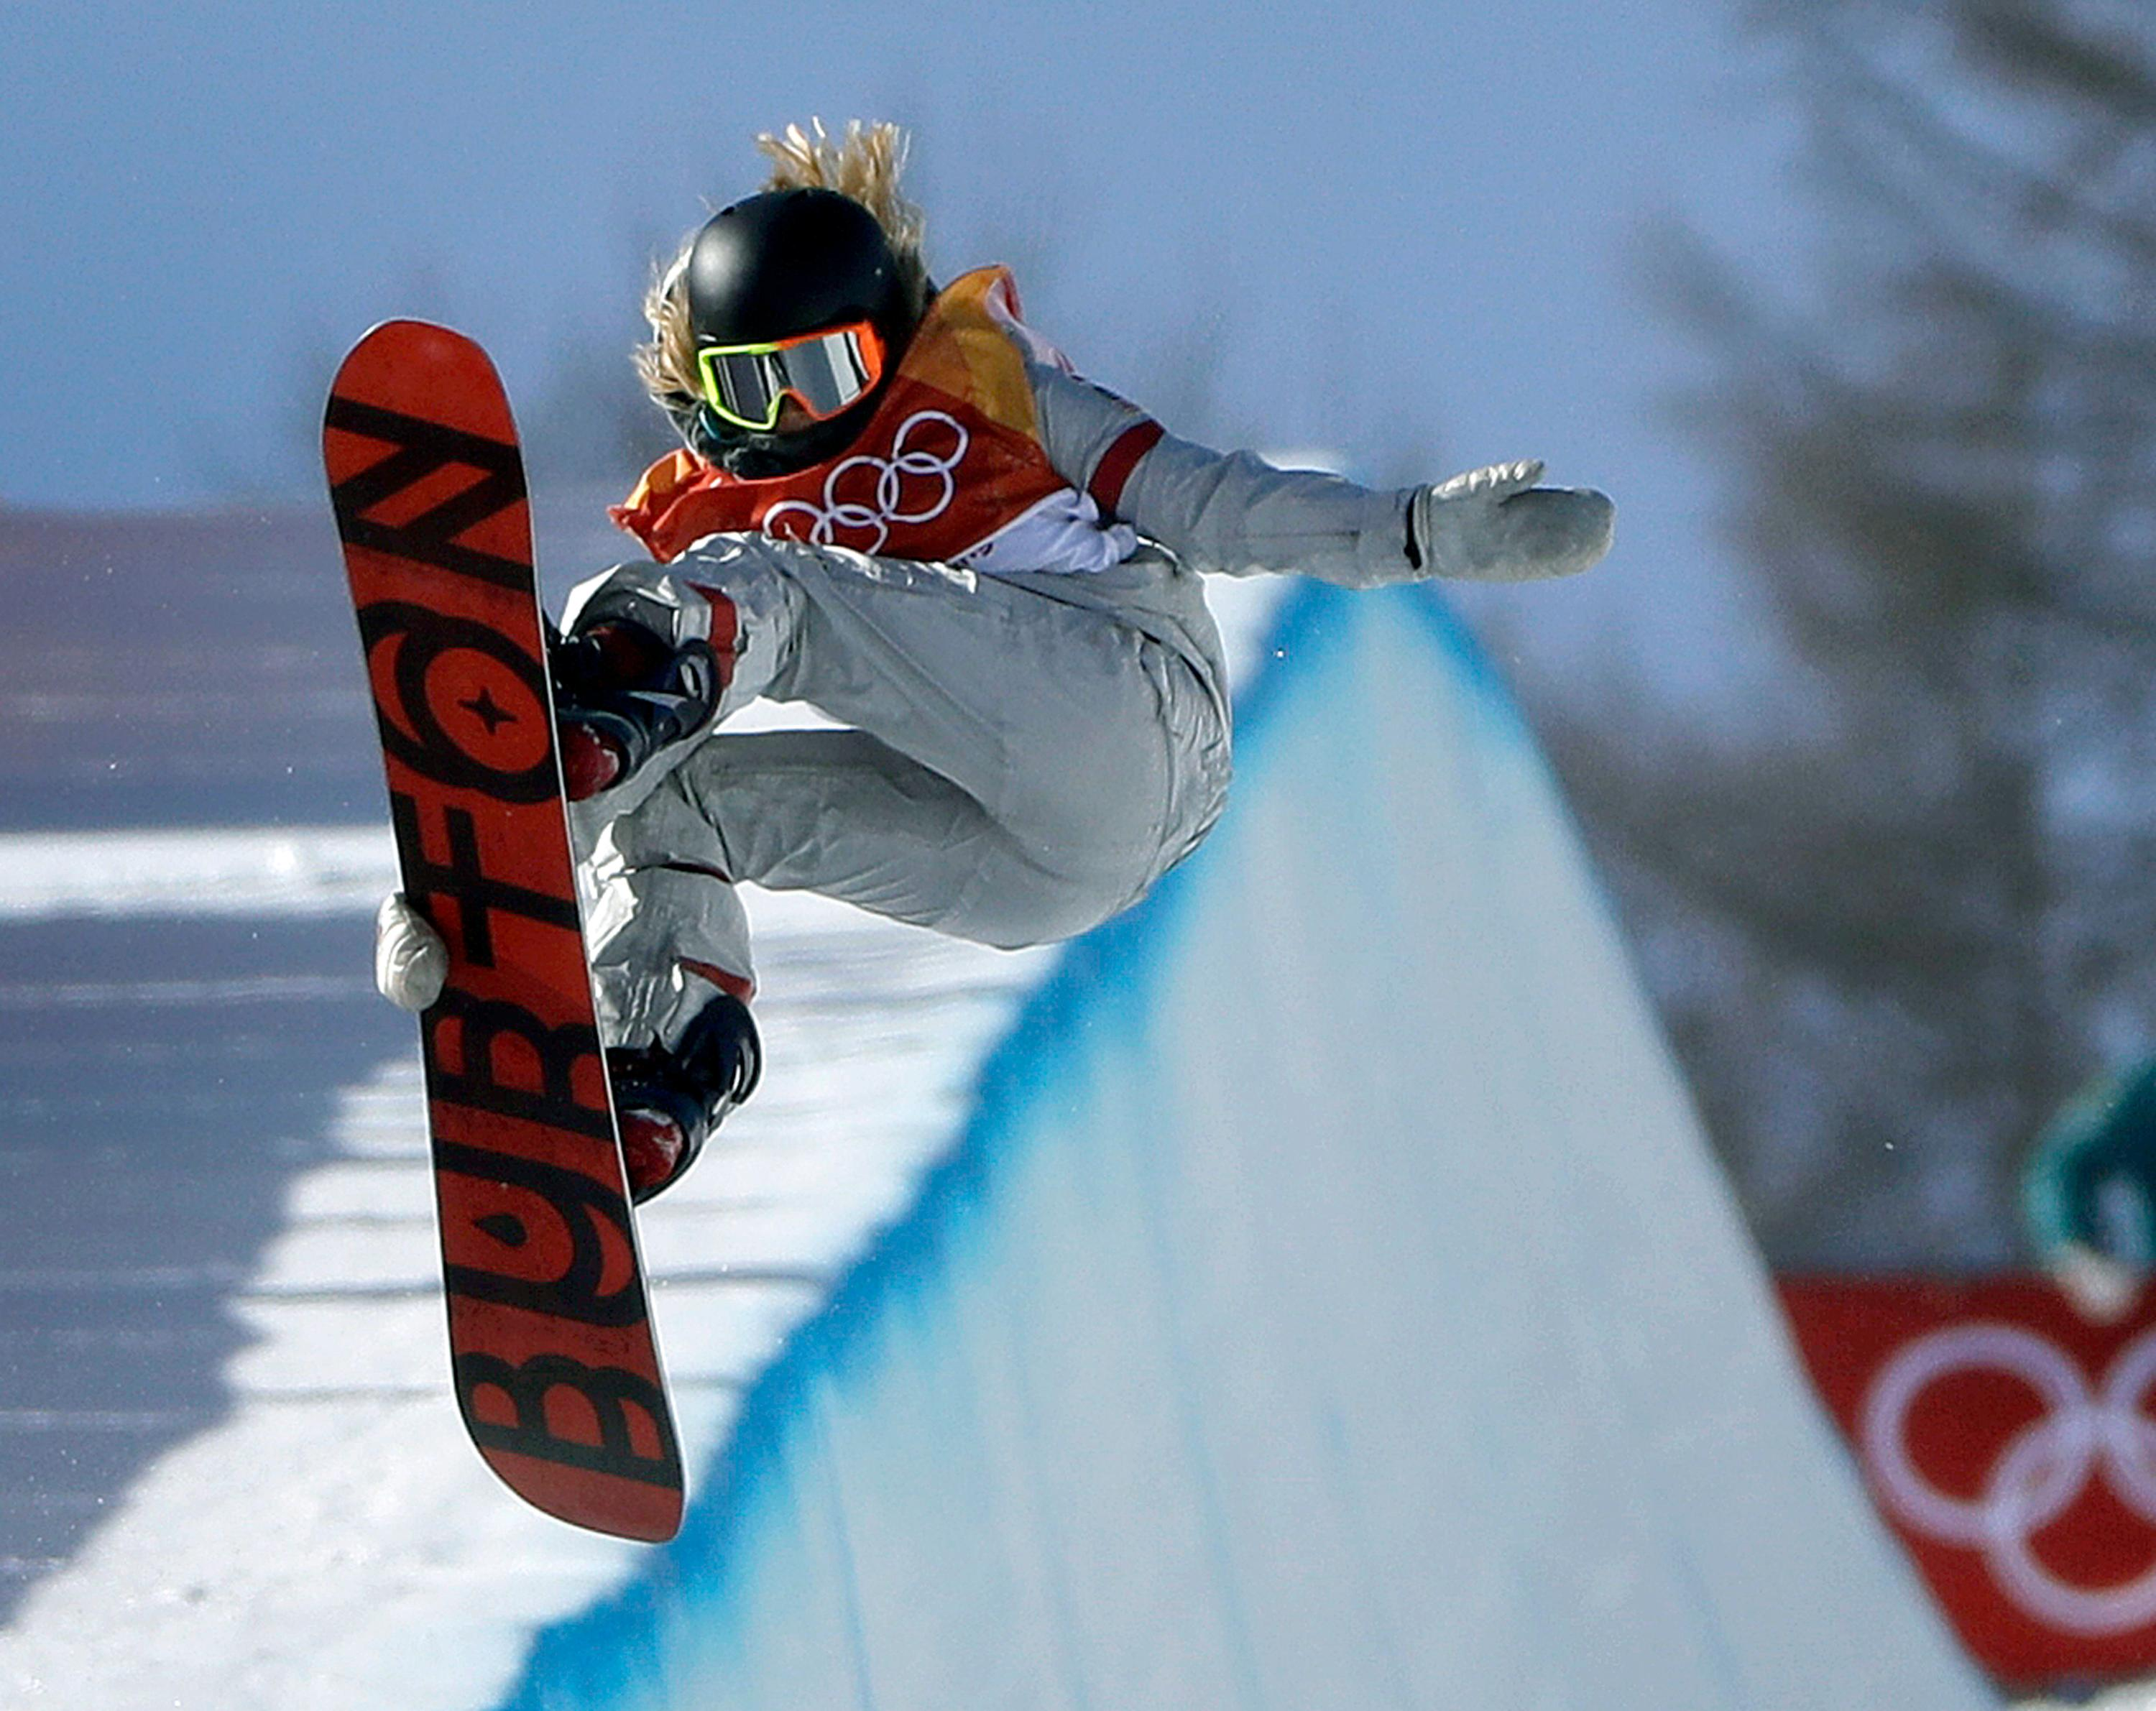 Chloe Kim, of the United States, jumps during the women's halfpipe finals at Phoenix Snow Park at the 2018 Winter Olympics in Pyeongchang, South Korea, Tuesday, Feb. 13, 2018. (AP Photo/Gregory Bull)